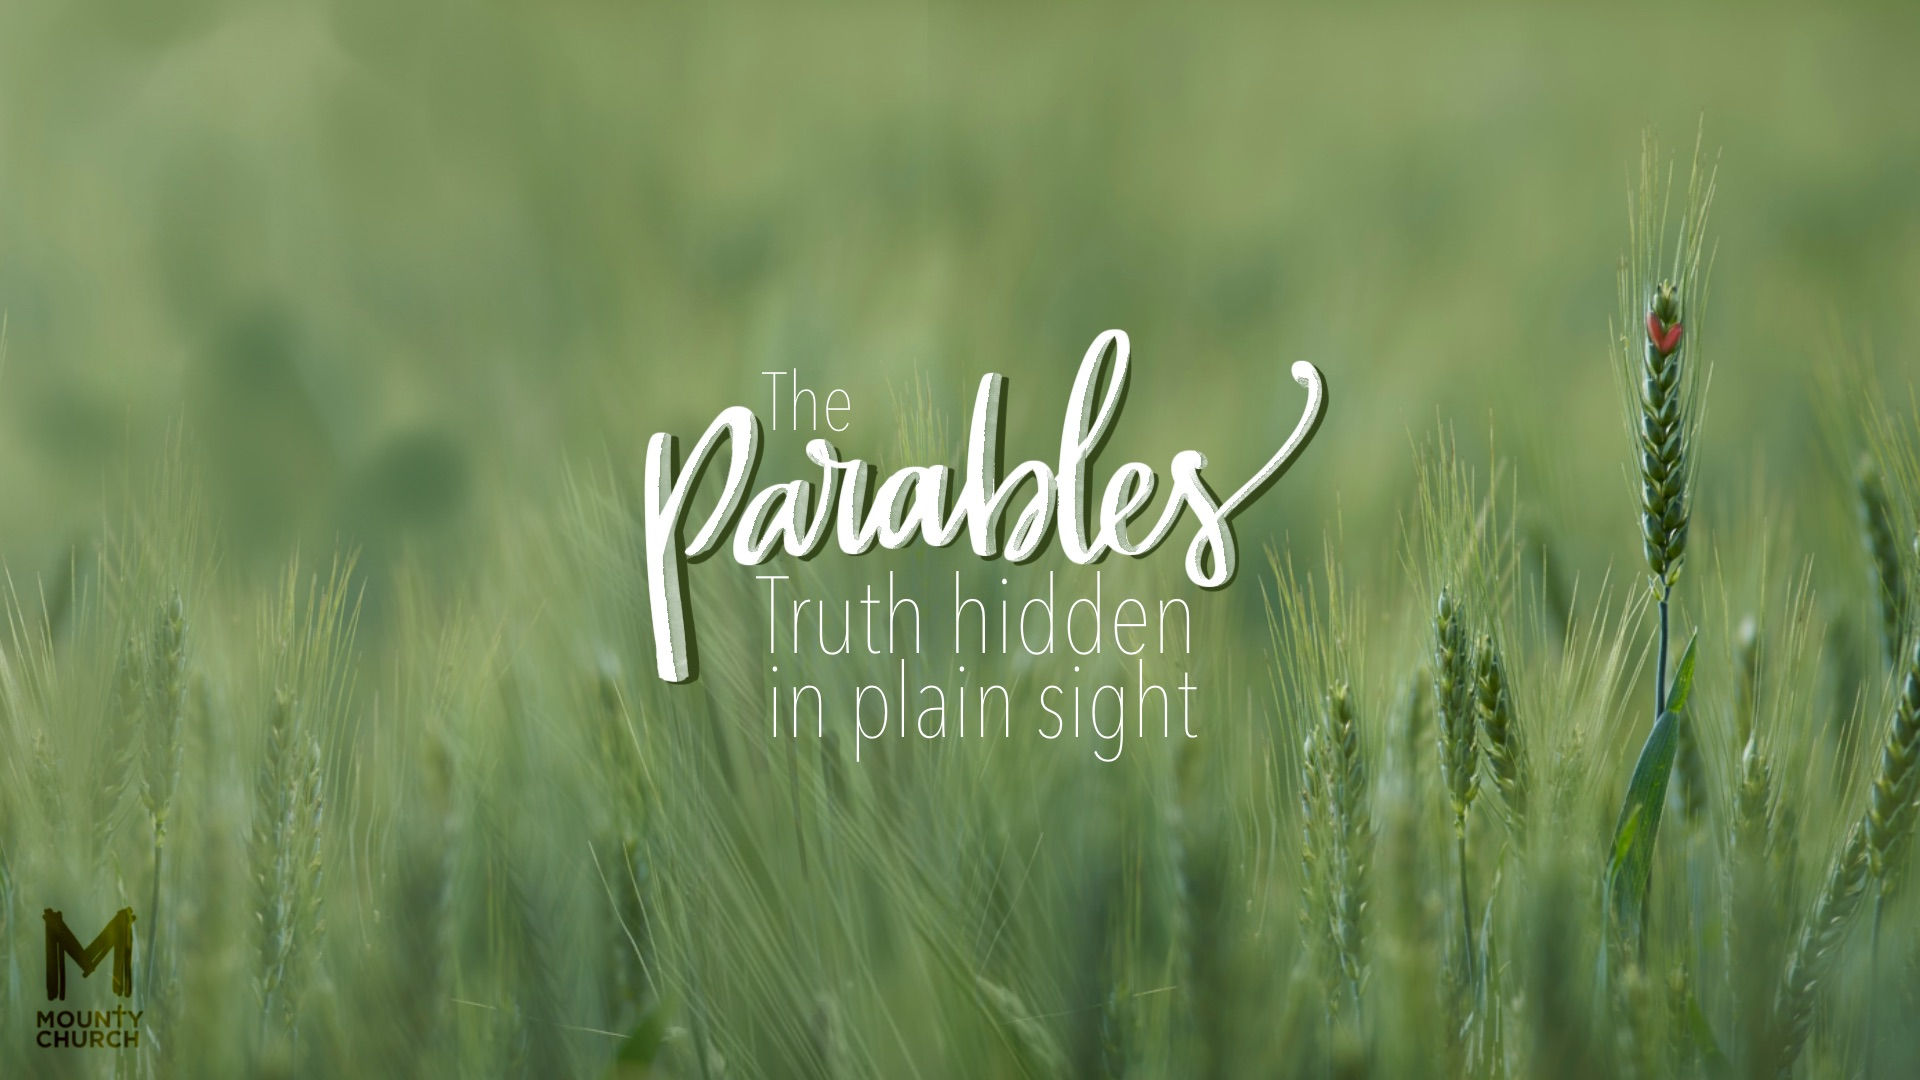 The Parables: Truth hidden in plain sight